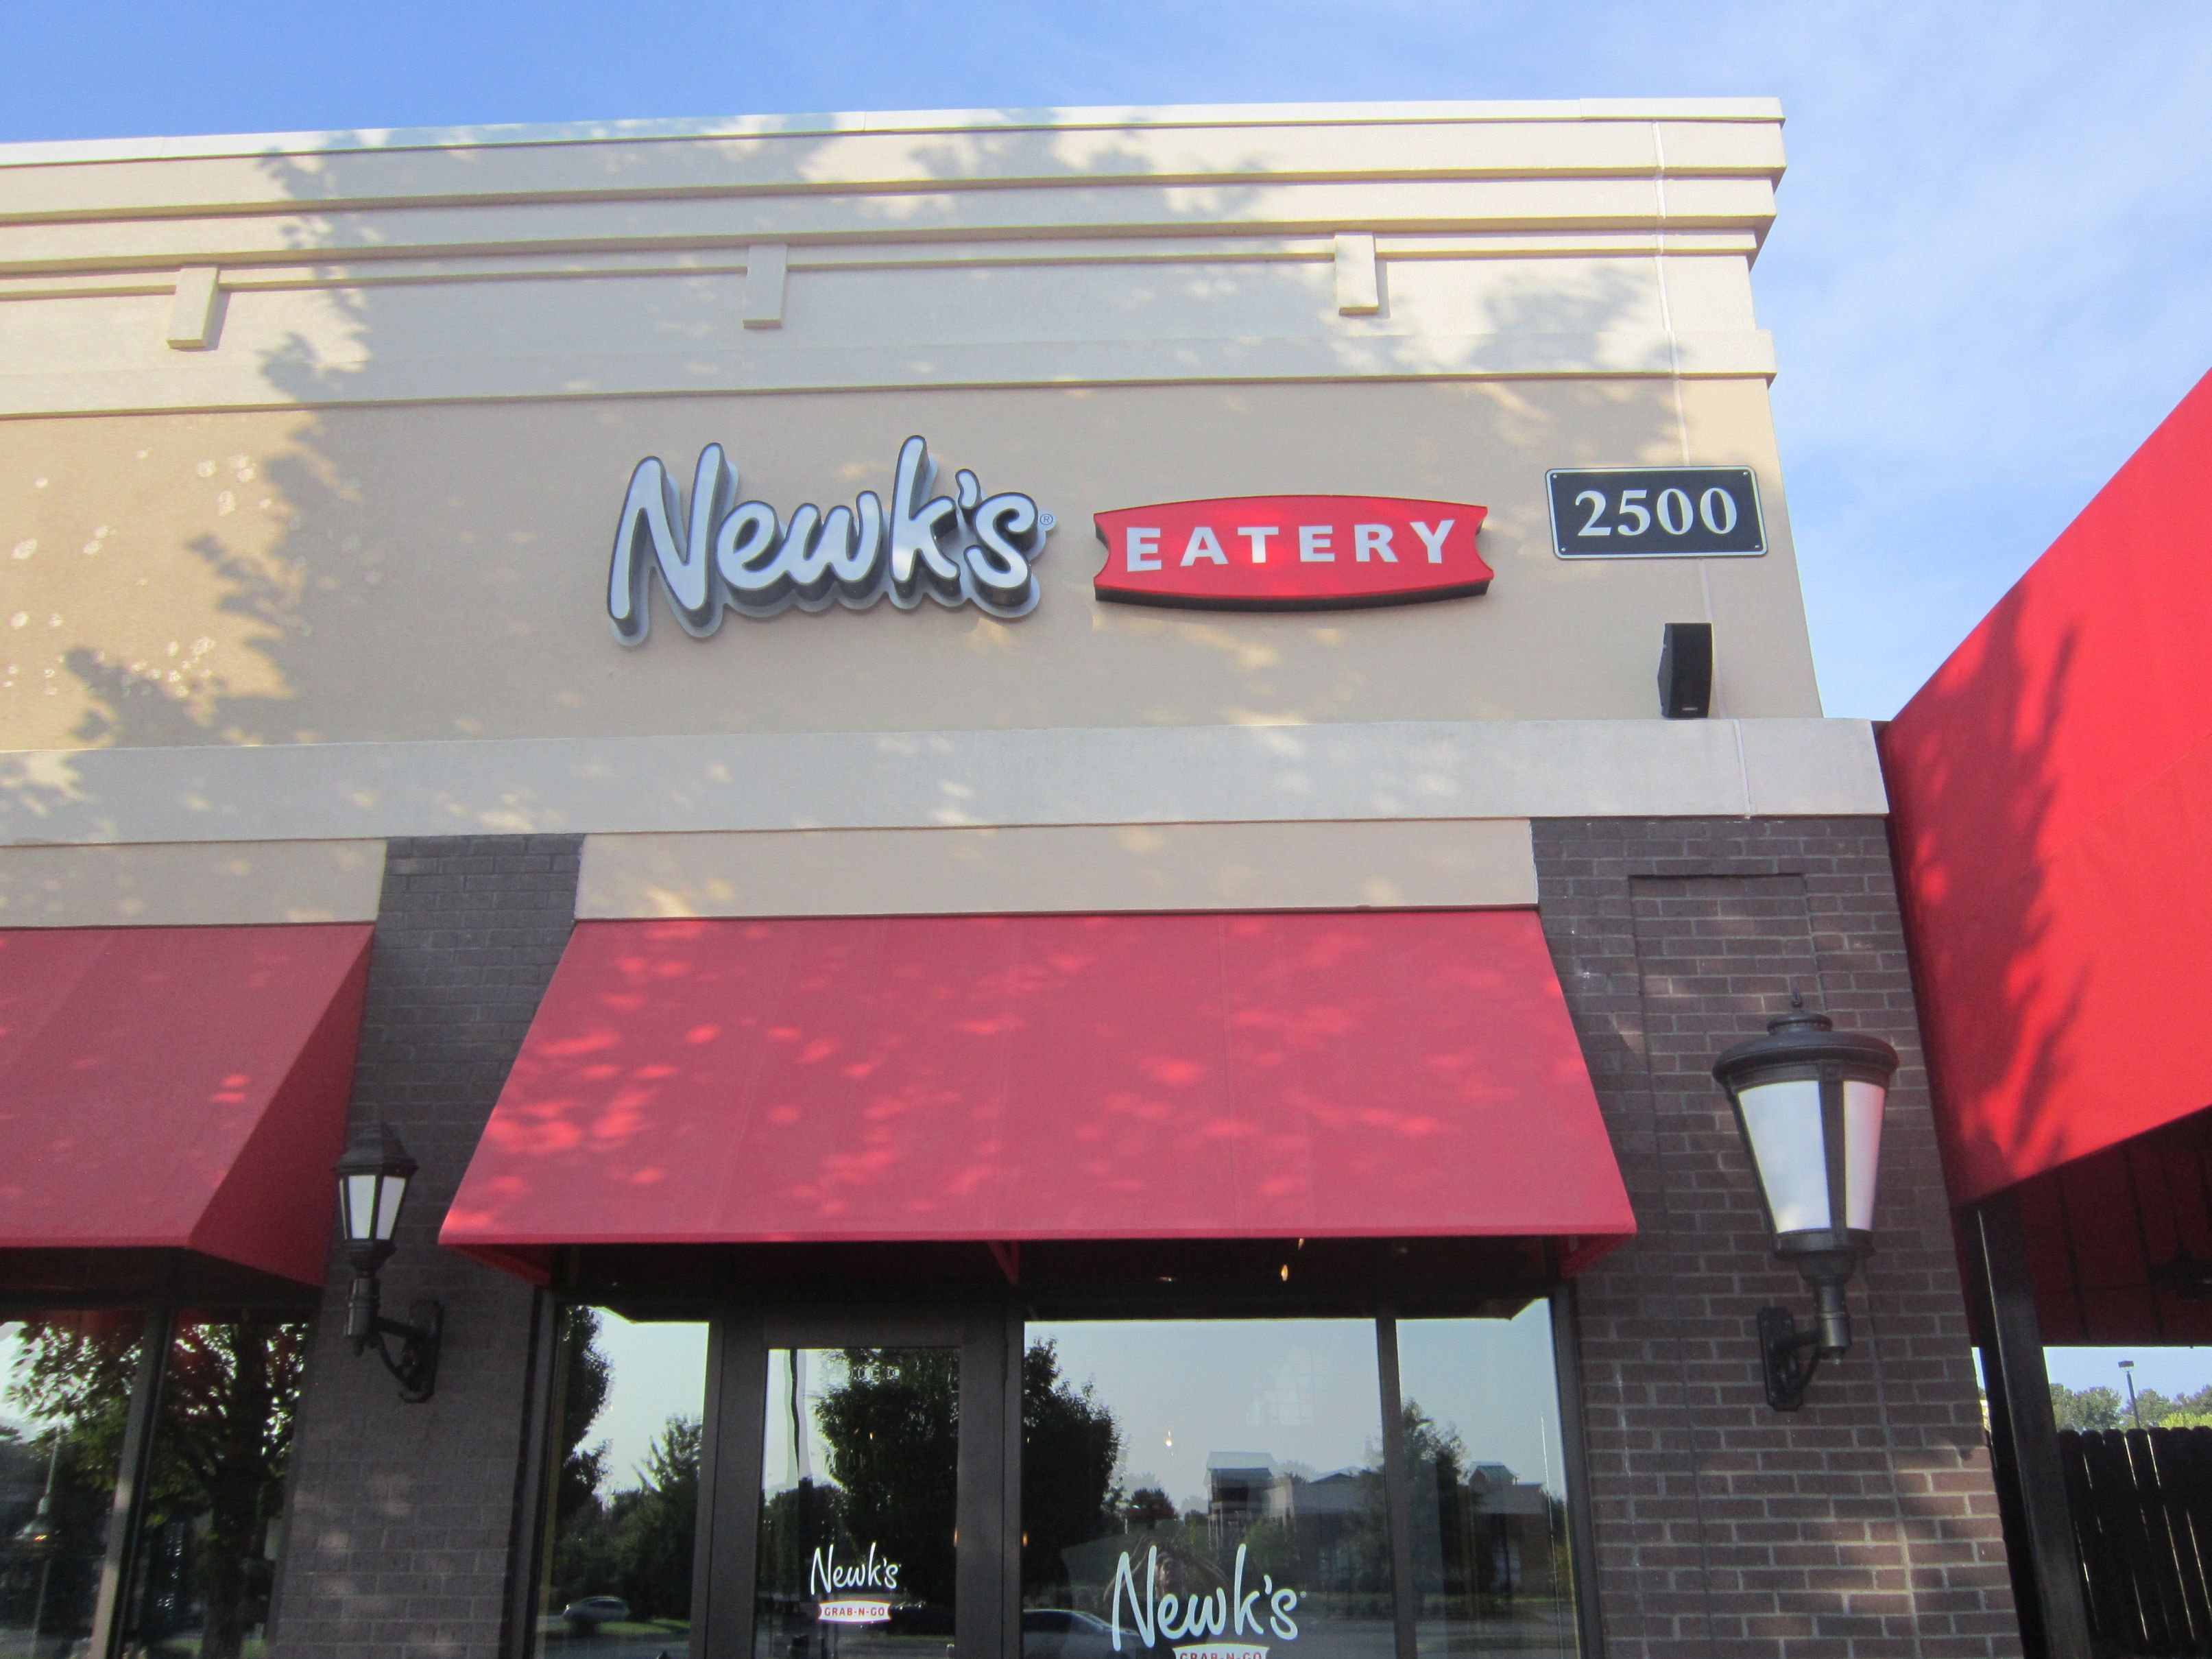 Newk's front elevation